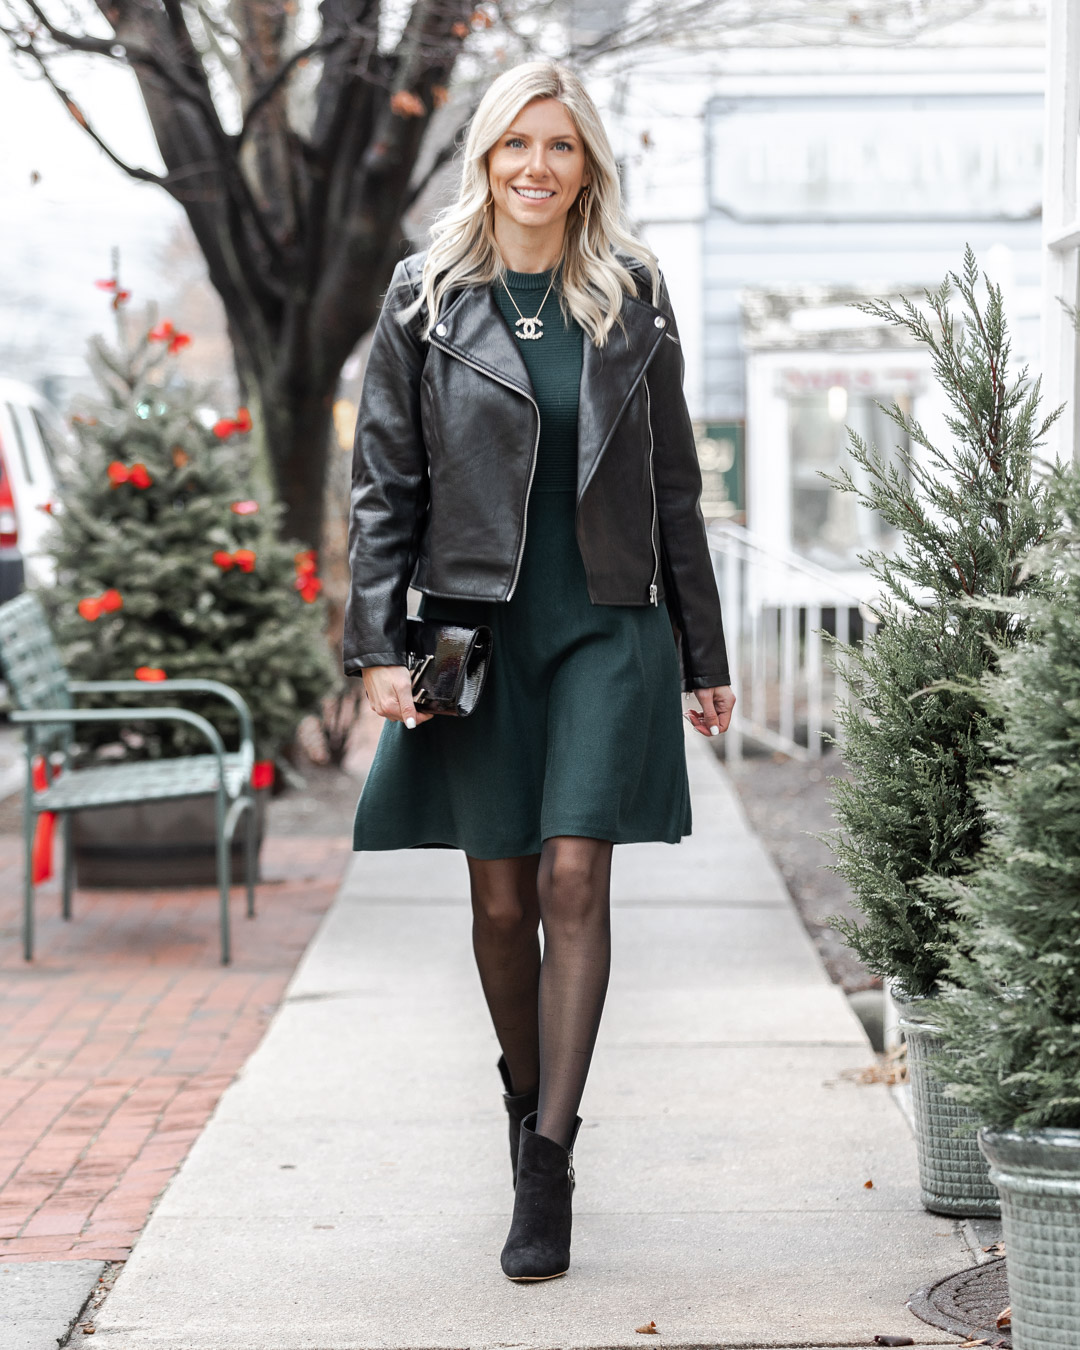 the perfect winter dress for work or play The Glamorous Gal